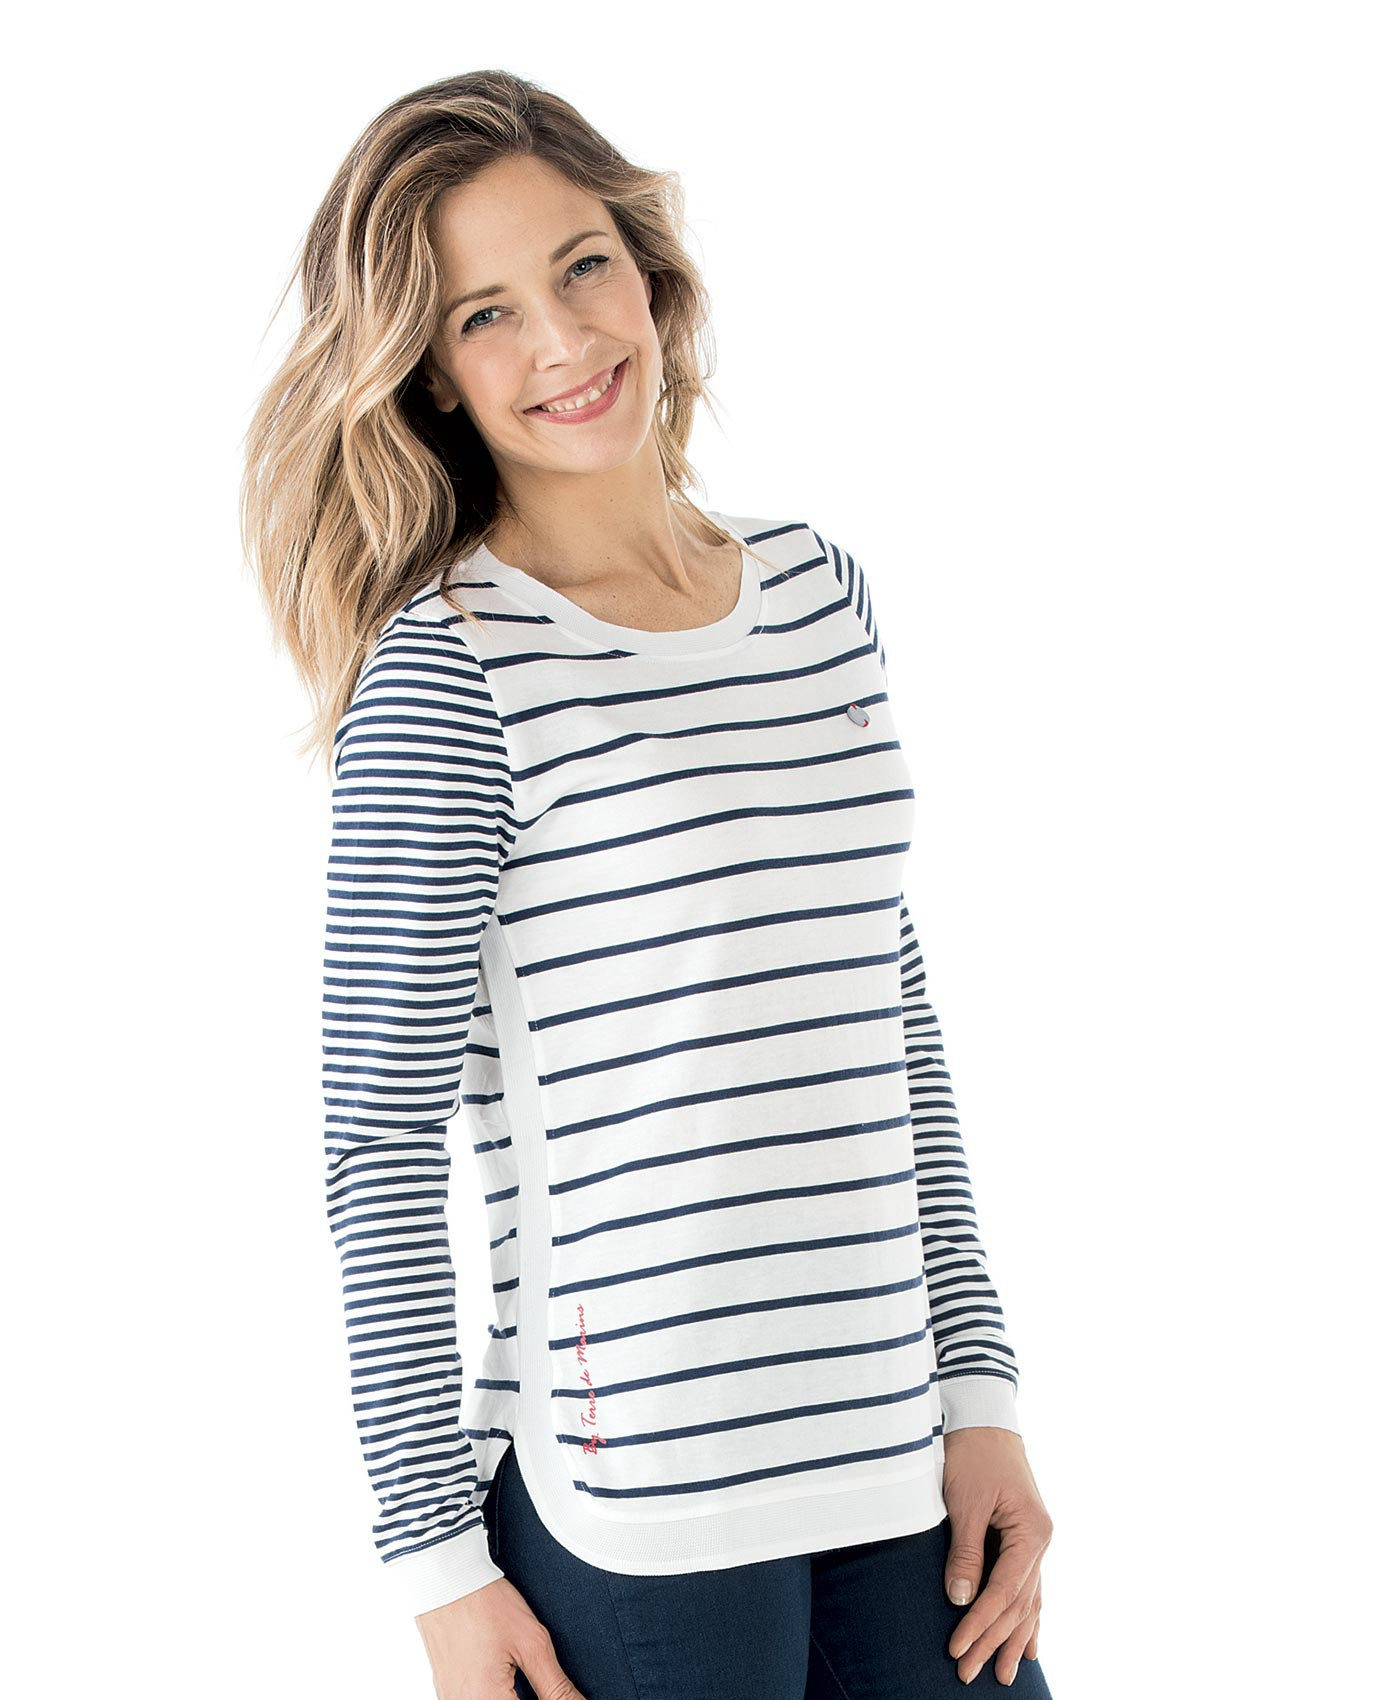 Tee-shirt manches longues femme rayé_0